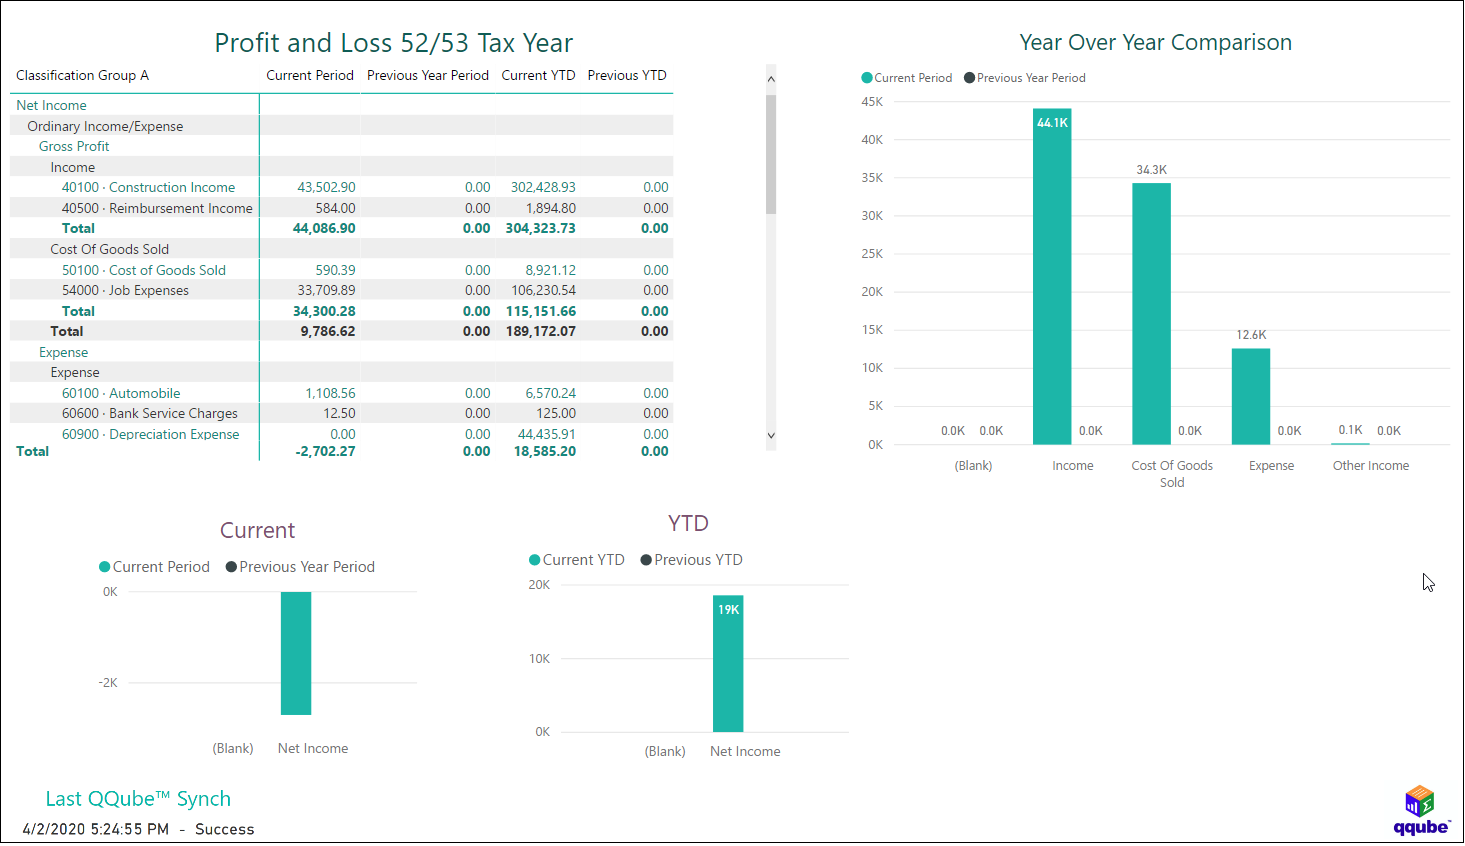 QuickBooks Profit and Loss for 52/53 Tax Year using QQube with Power BI